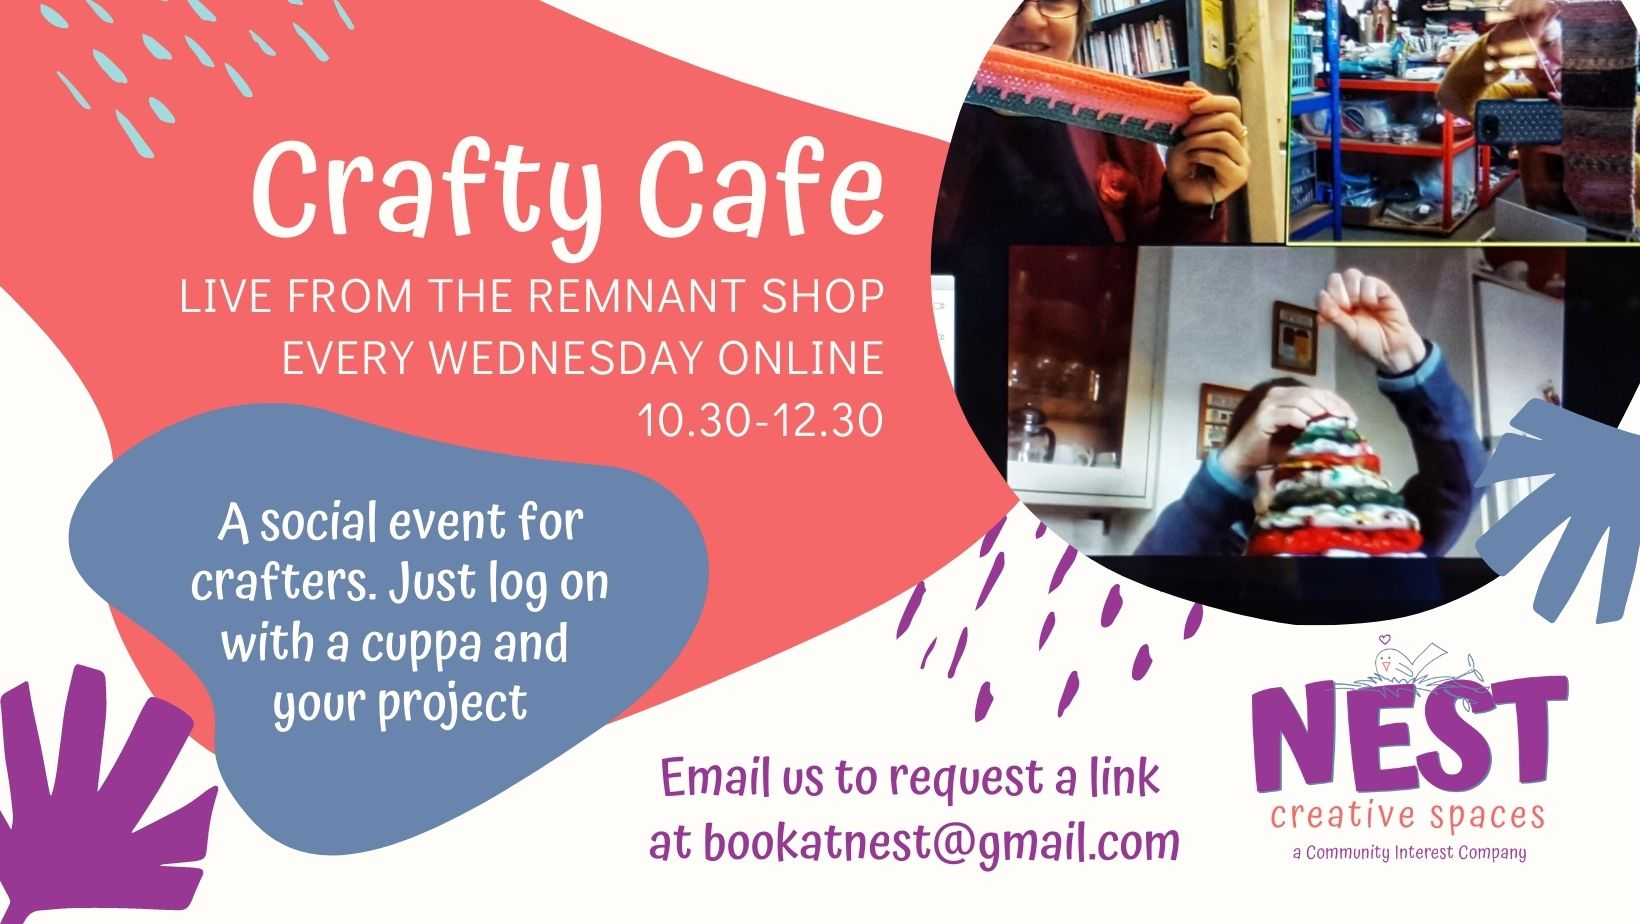 Details about the online Crafty Cafe run online every Wednesday